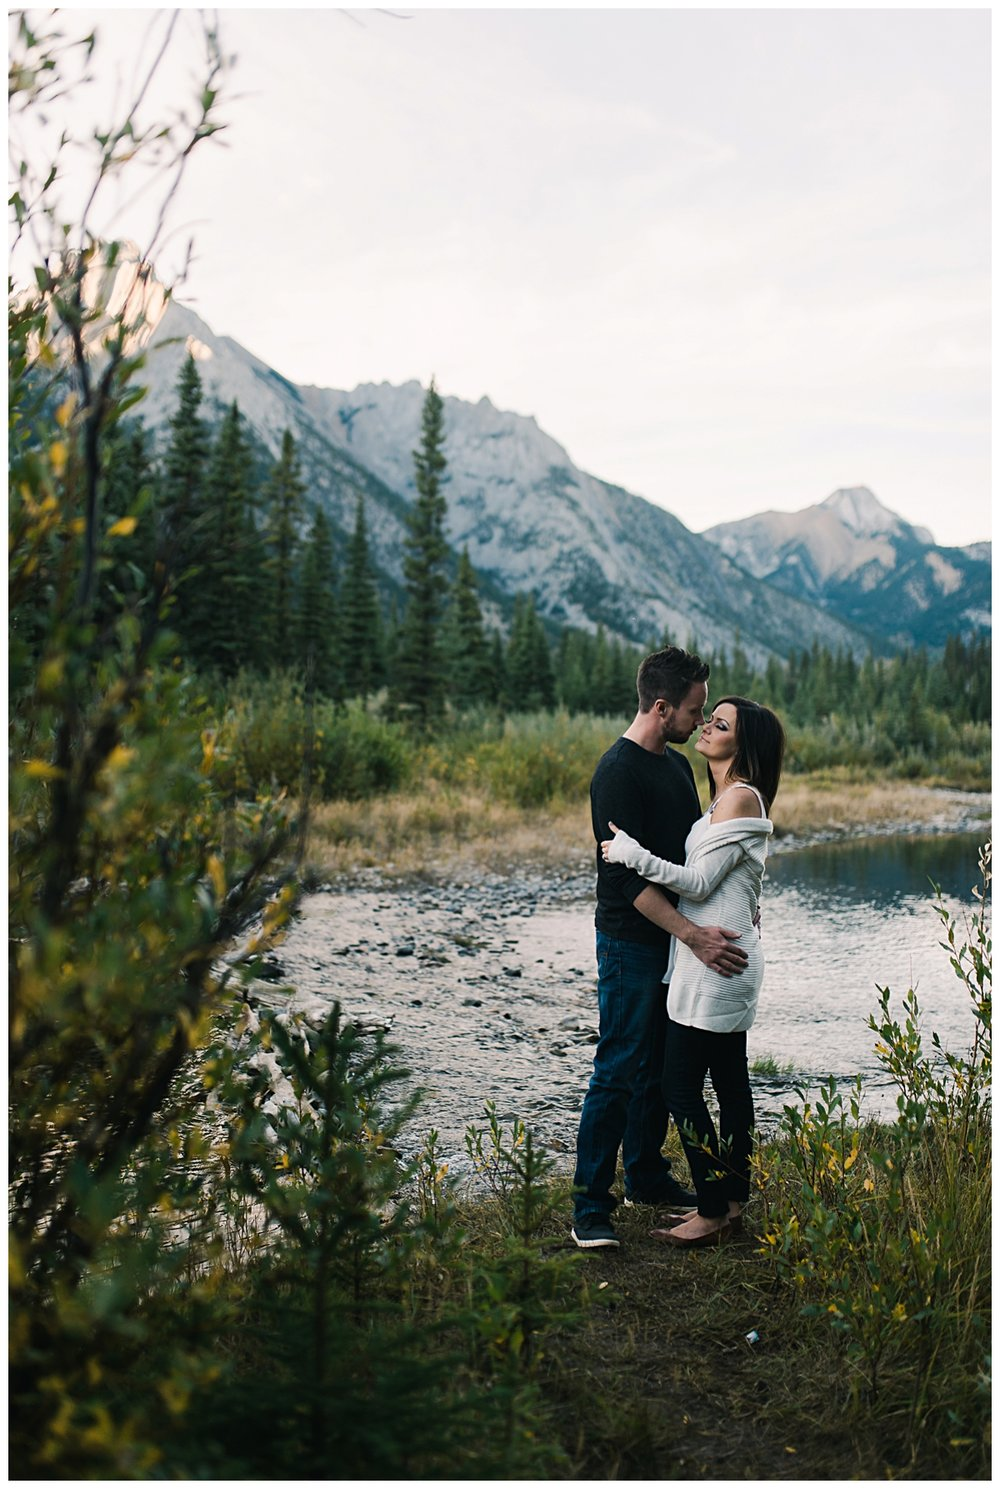 kananaskis_engagement (16 of 20).jpg